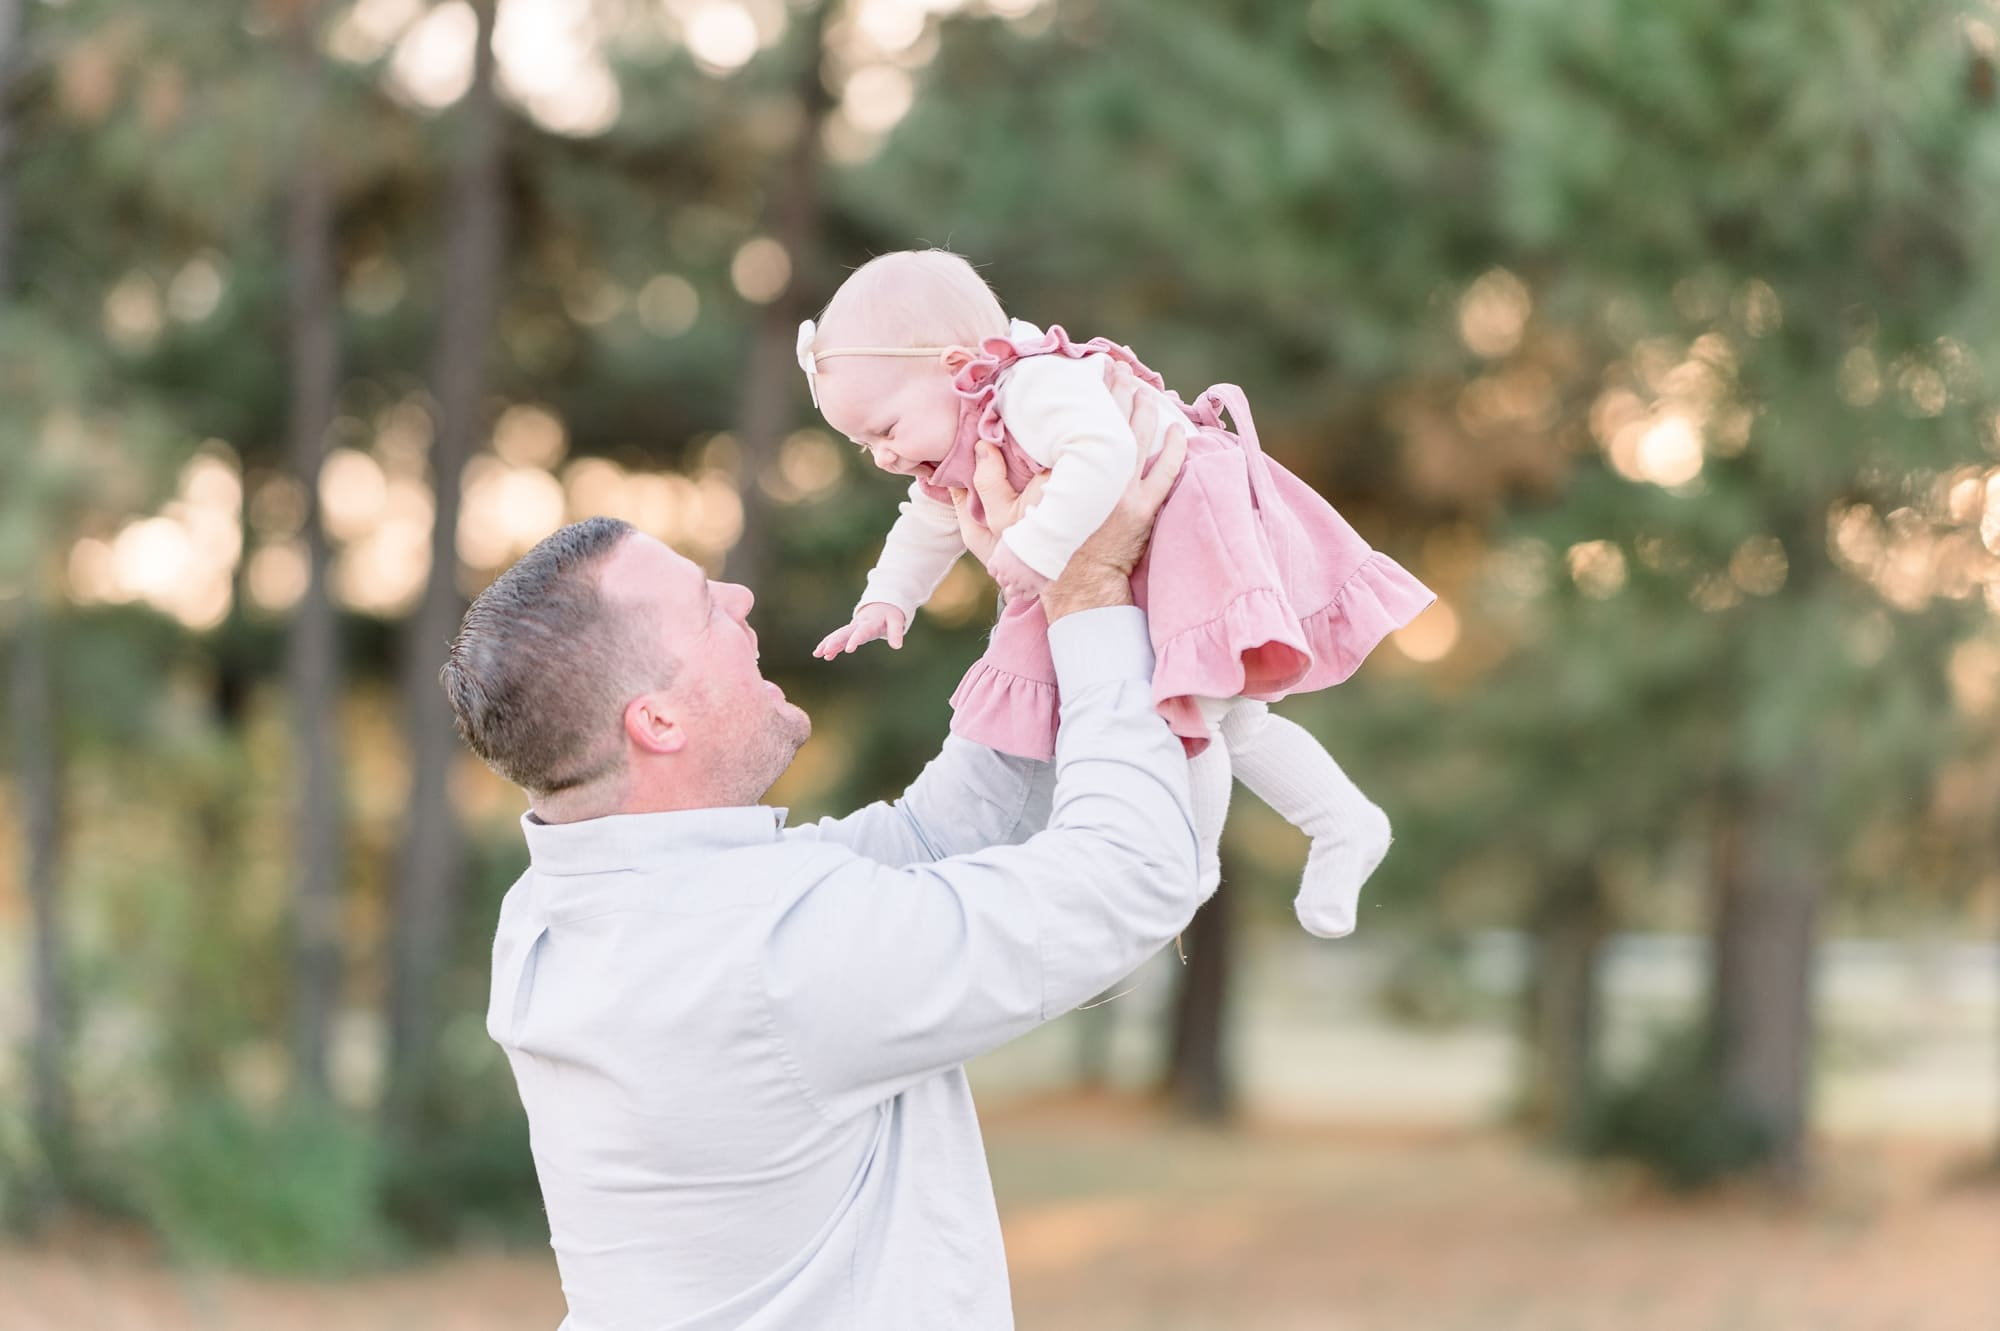 Dad playing airplane with daughter during session. Photo by Dallas TX family photographer, Aimee Hamilton Photography.